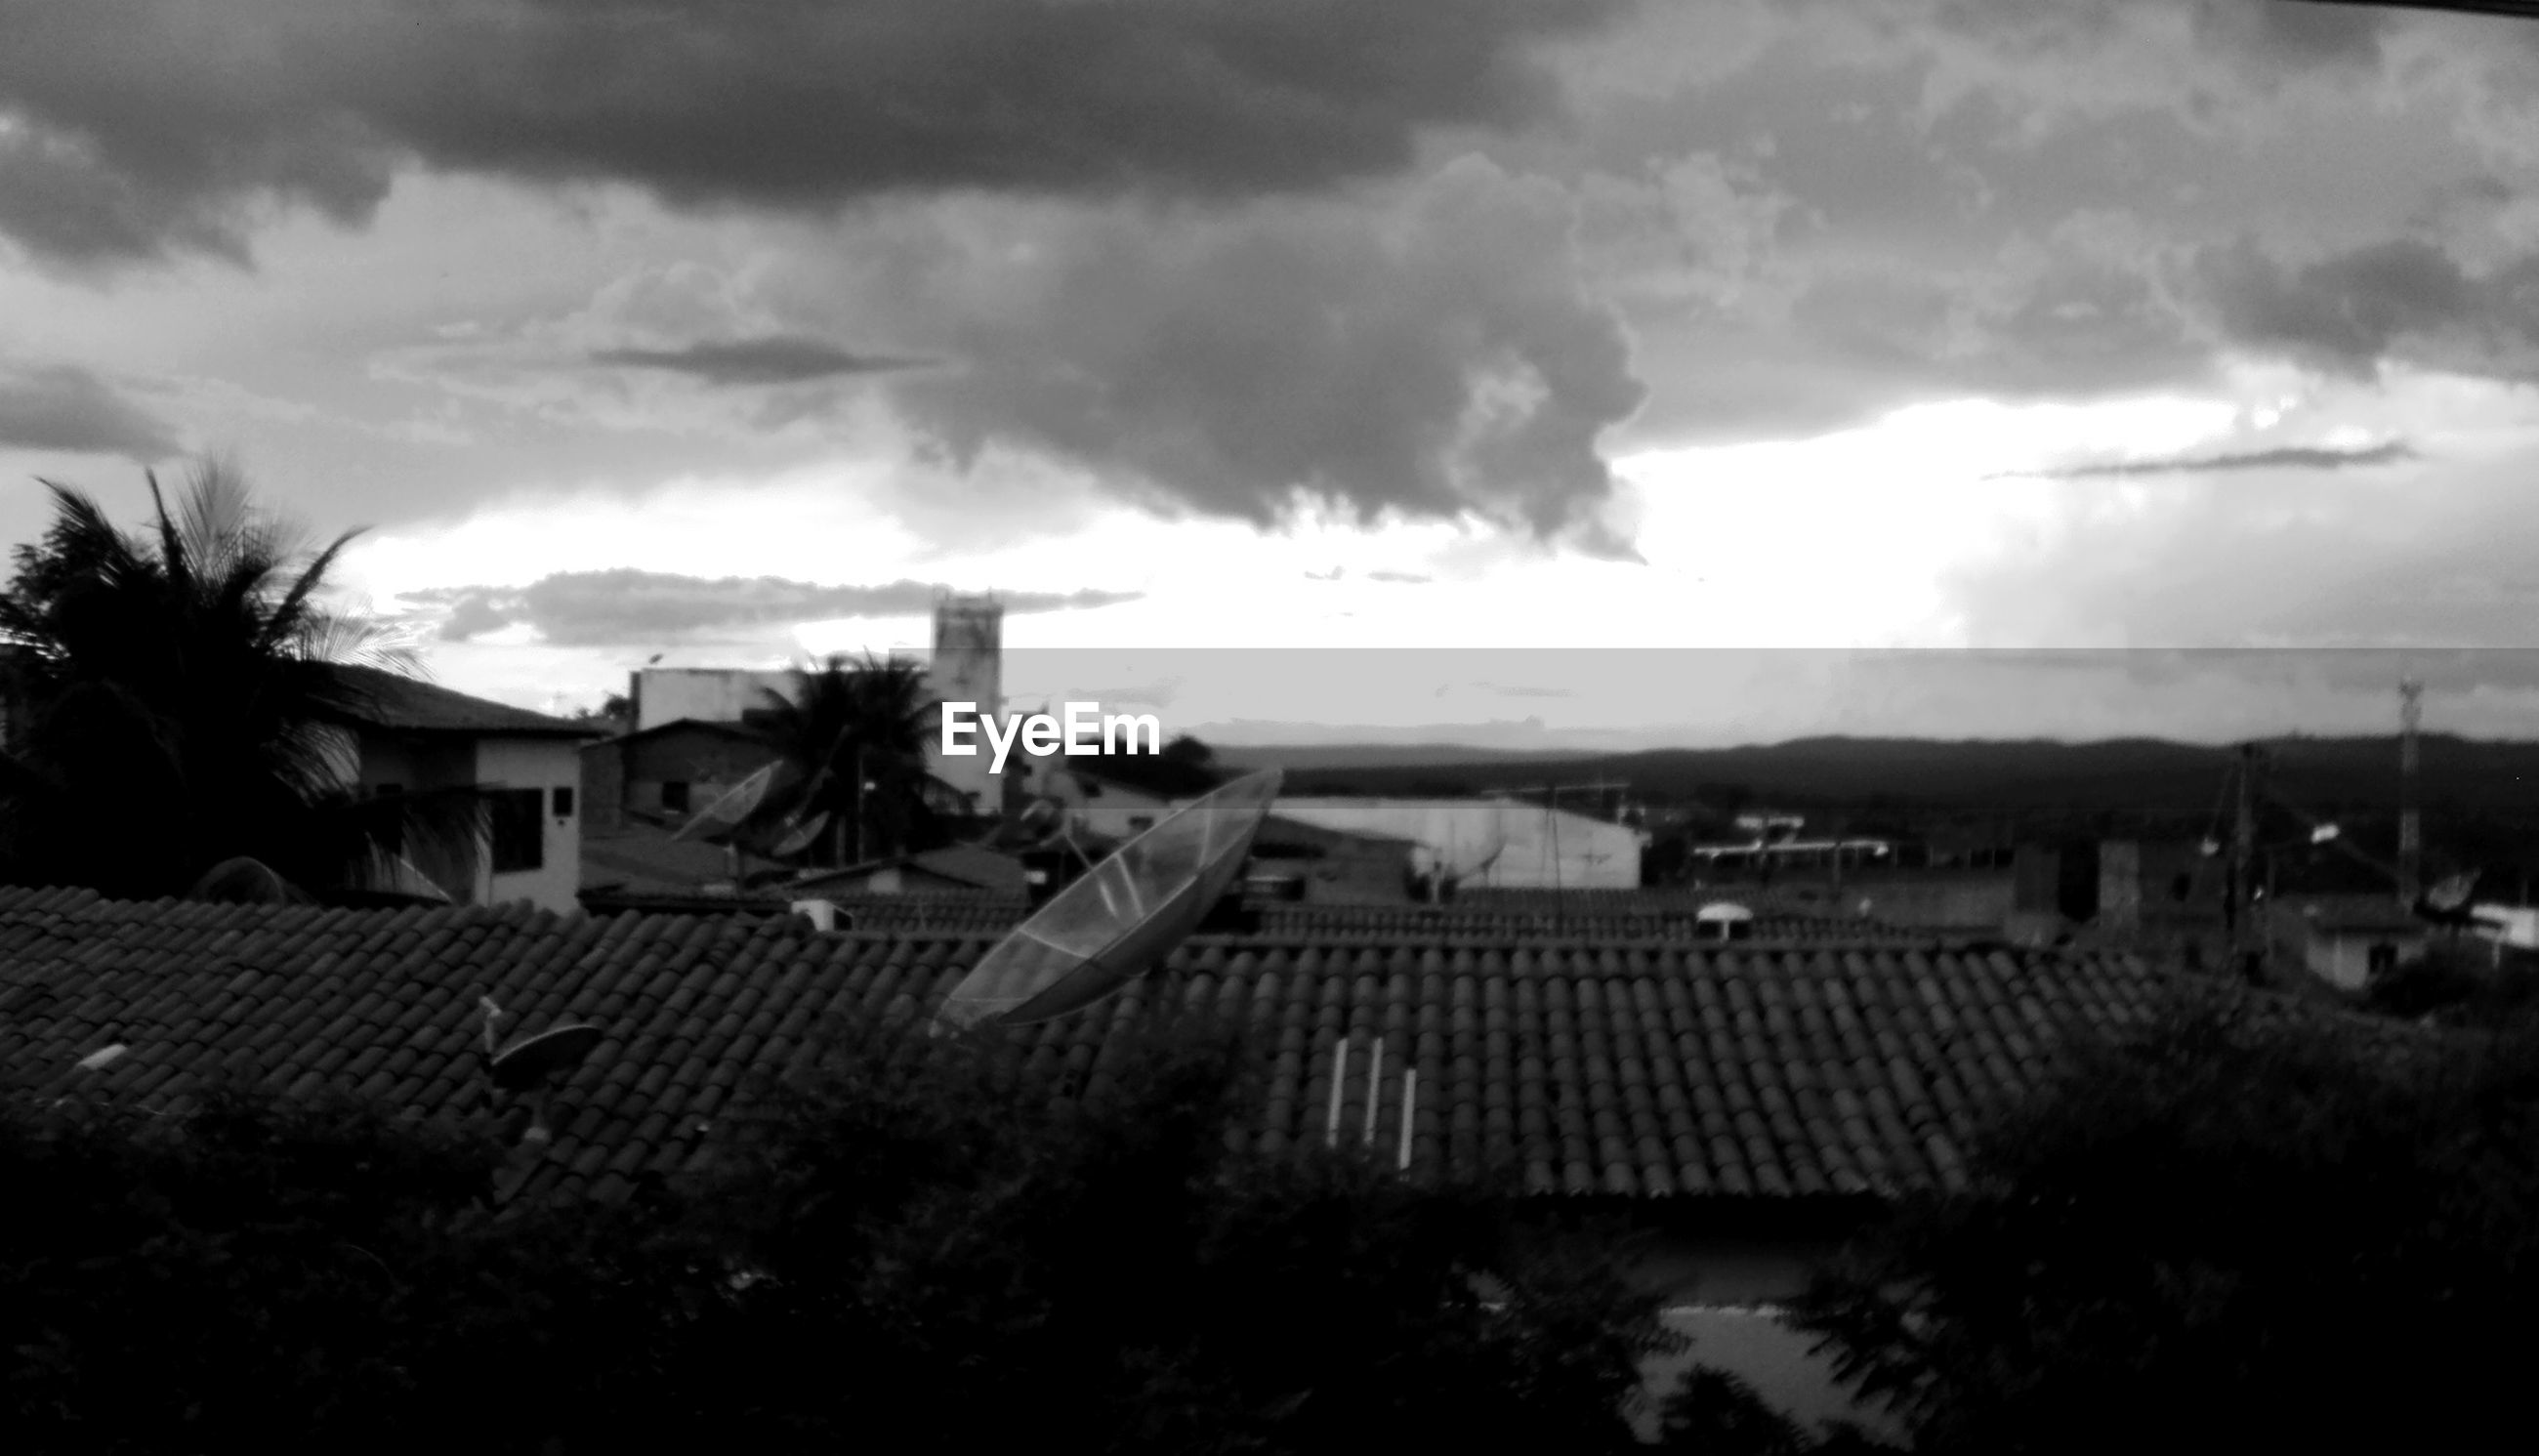 sky, built structure, building exterior, architecture, cloud - sky, house, tree, outdoors, village, no people, agriculture, day, nature, storm cloud